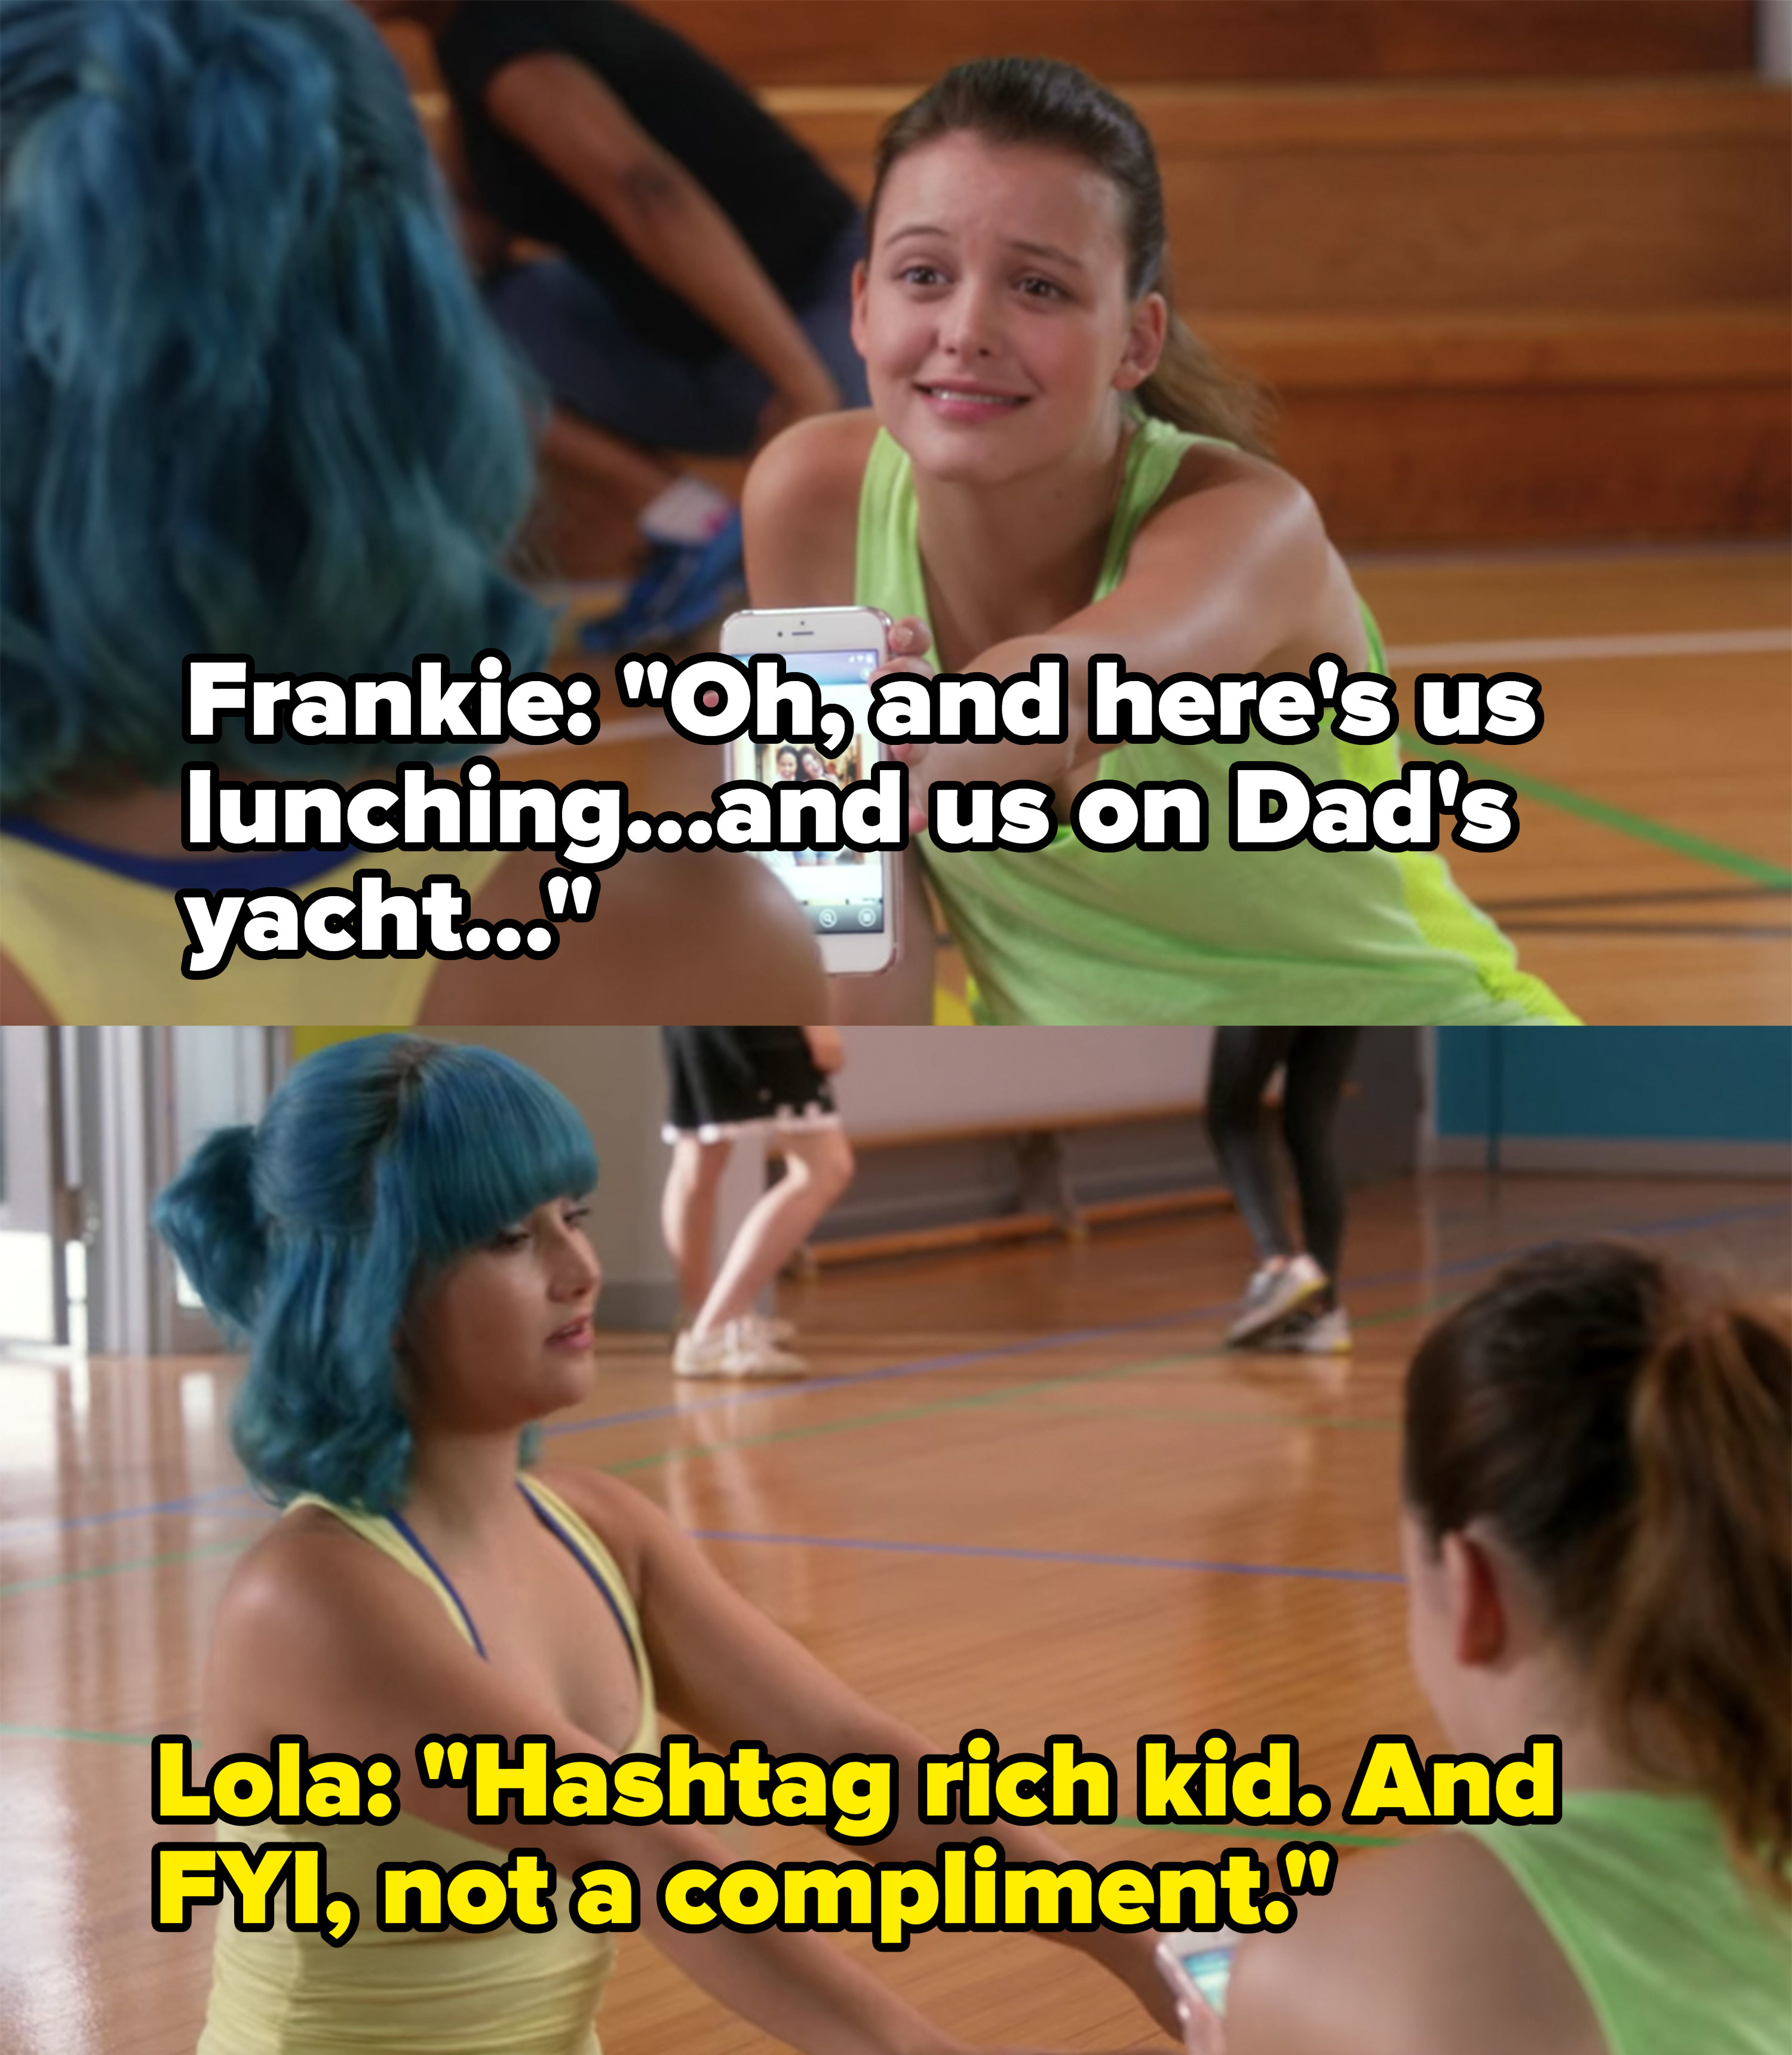 """Frankie brags about partying on her dad's yacht and Lola responds, """"Hashtag rich kid, and FYI, not a compliment"""""""